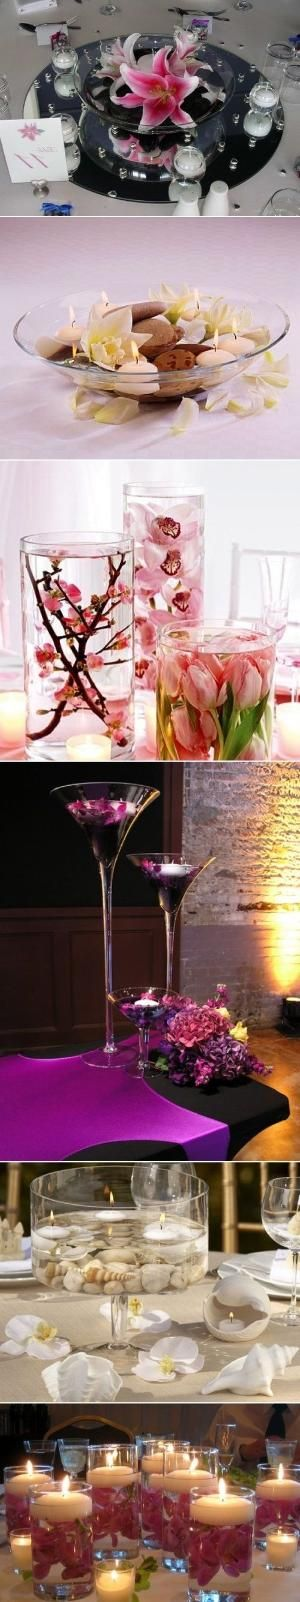 DIY Floating Flowers And Candles Centerpieces by Aeerdna